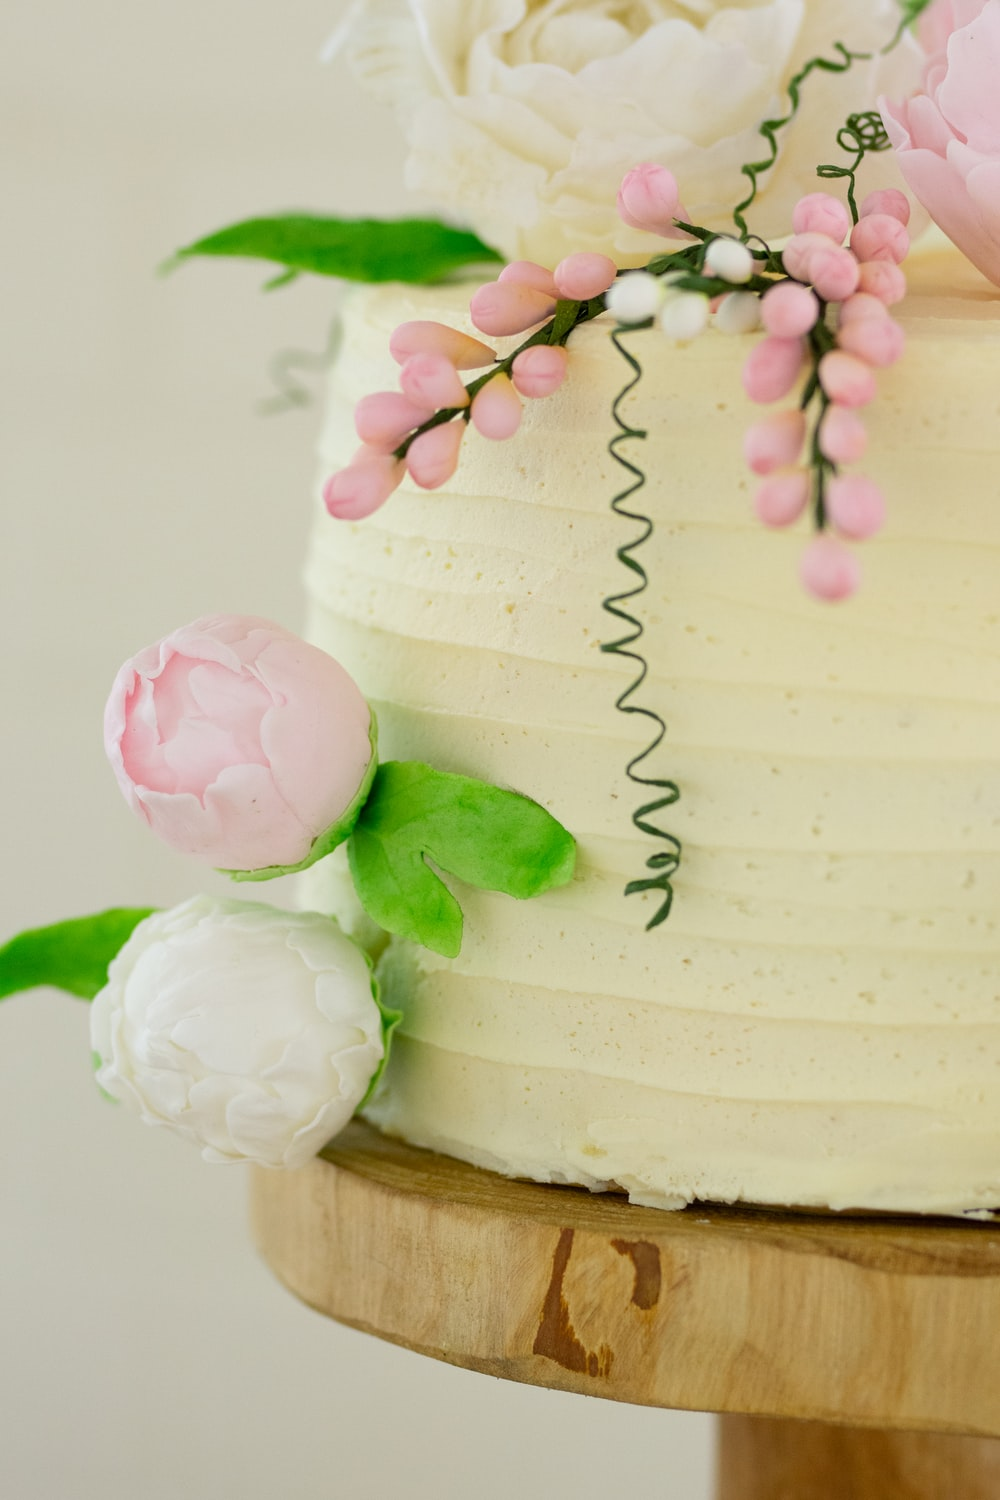 white and green cake with pink flower on top